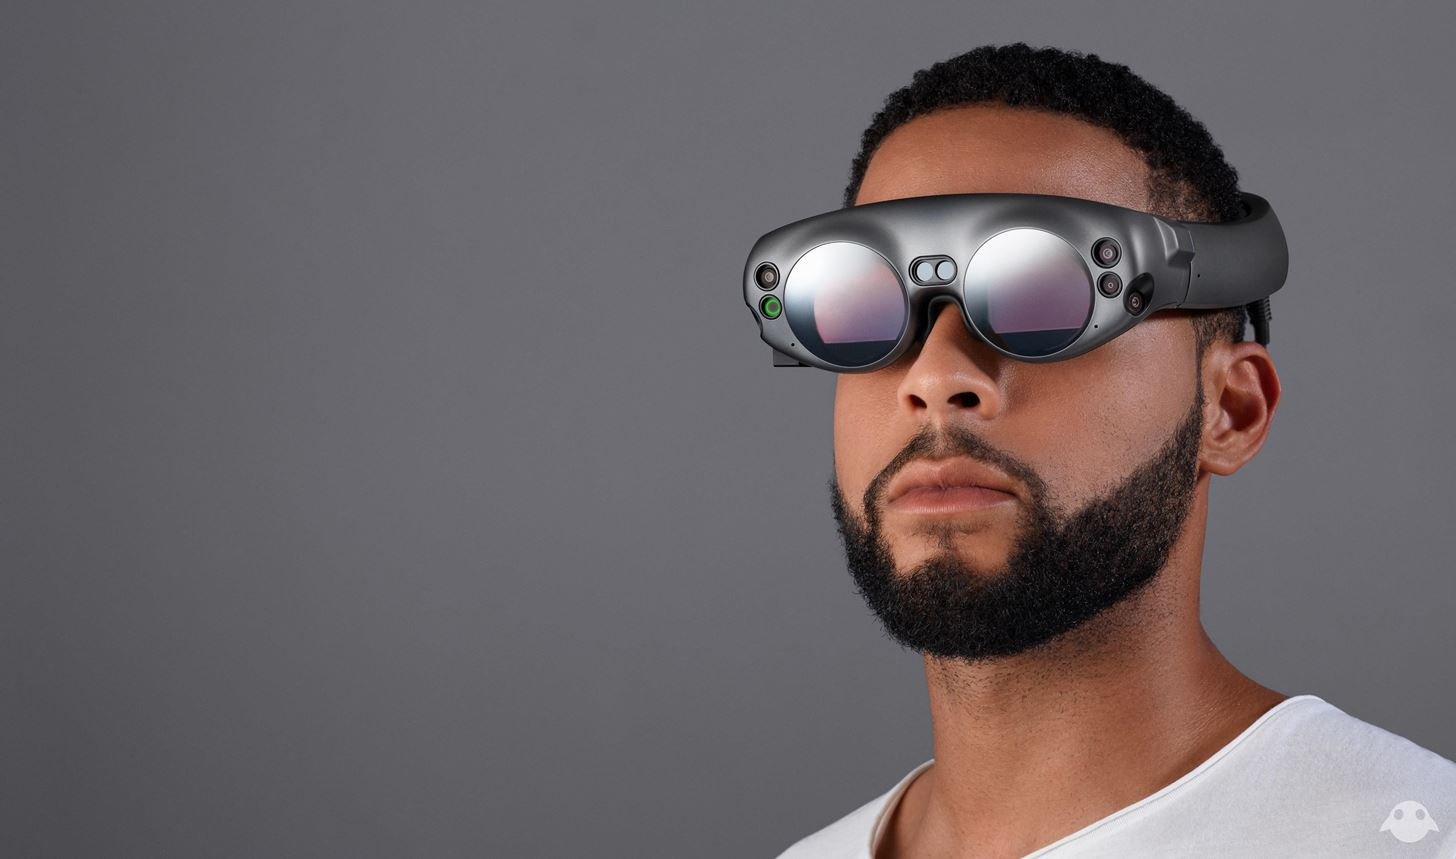 After Years of Mystery & Nearly $2 Billion Invested, Magic Leap Finally Reveals 'Creator Edition' Headset